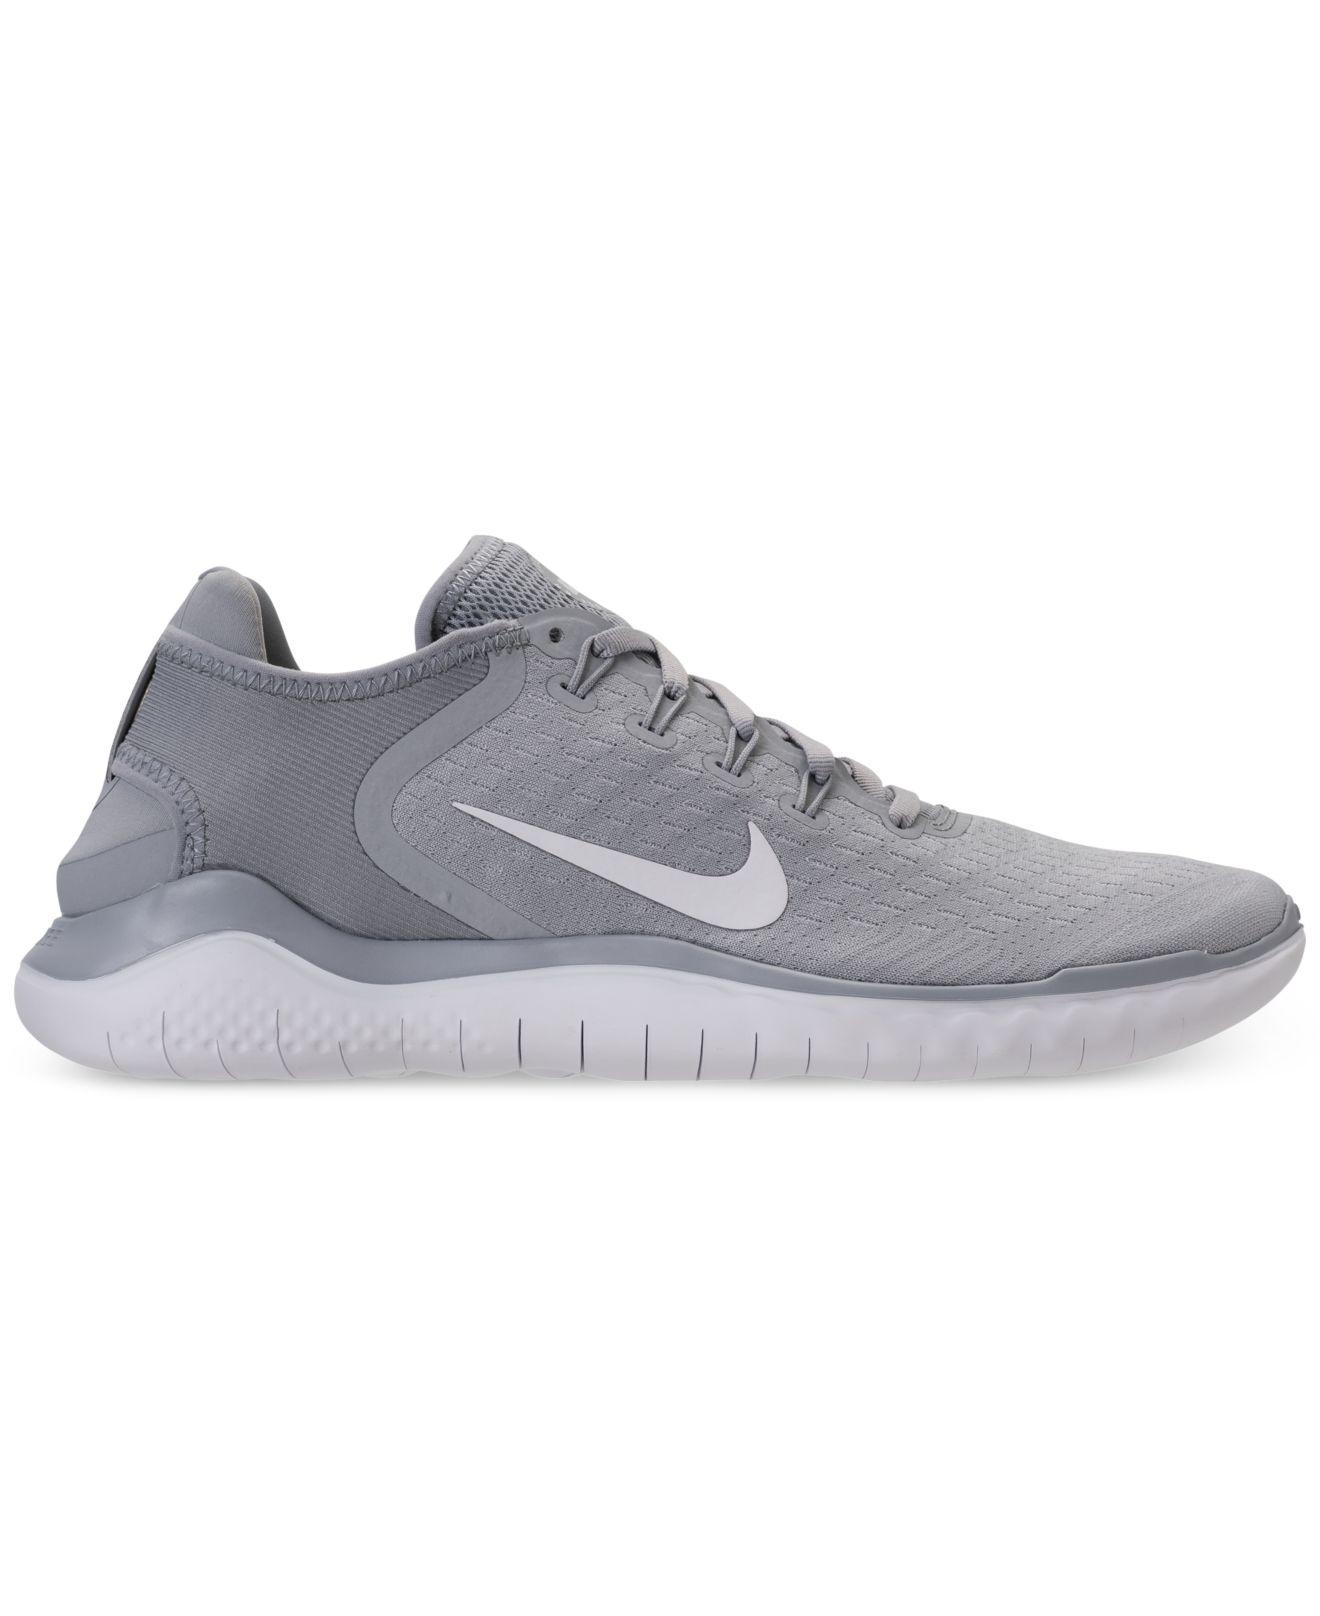 Lyst - Nike Free Run 2018 Running Sneakers From Finish Line in Gray for Men 0e8cd3b40a12